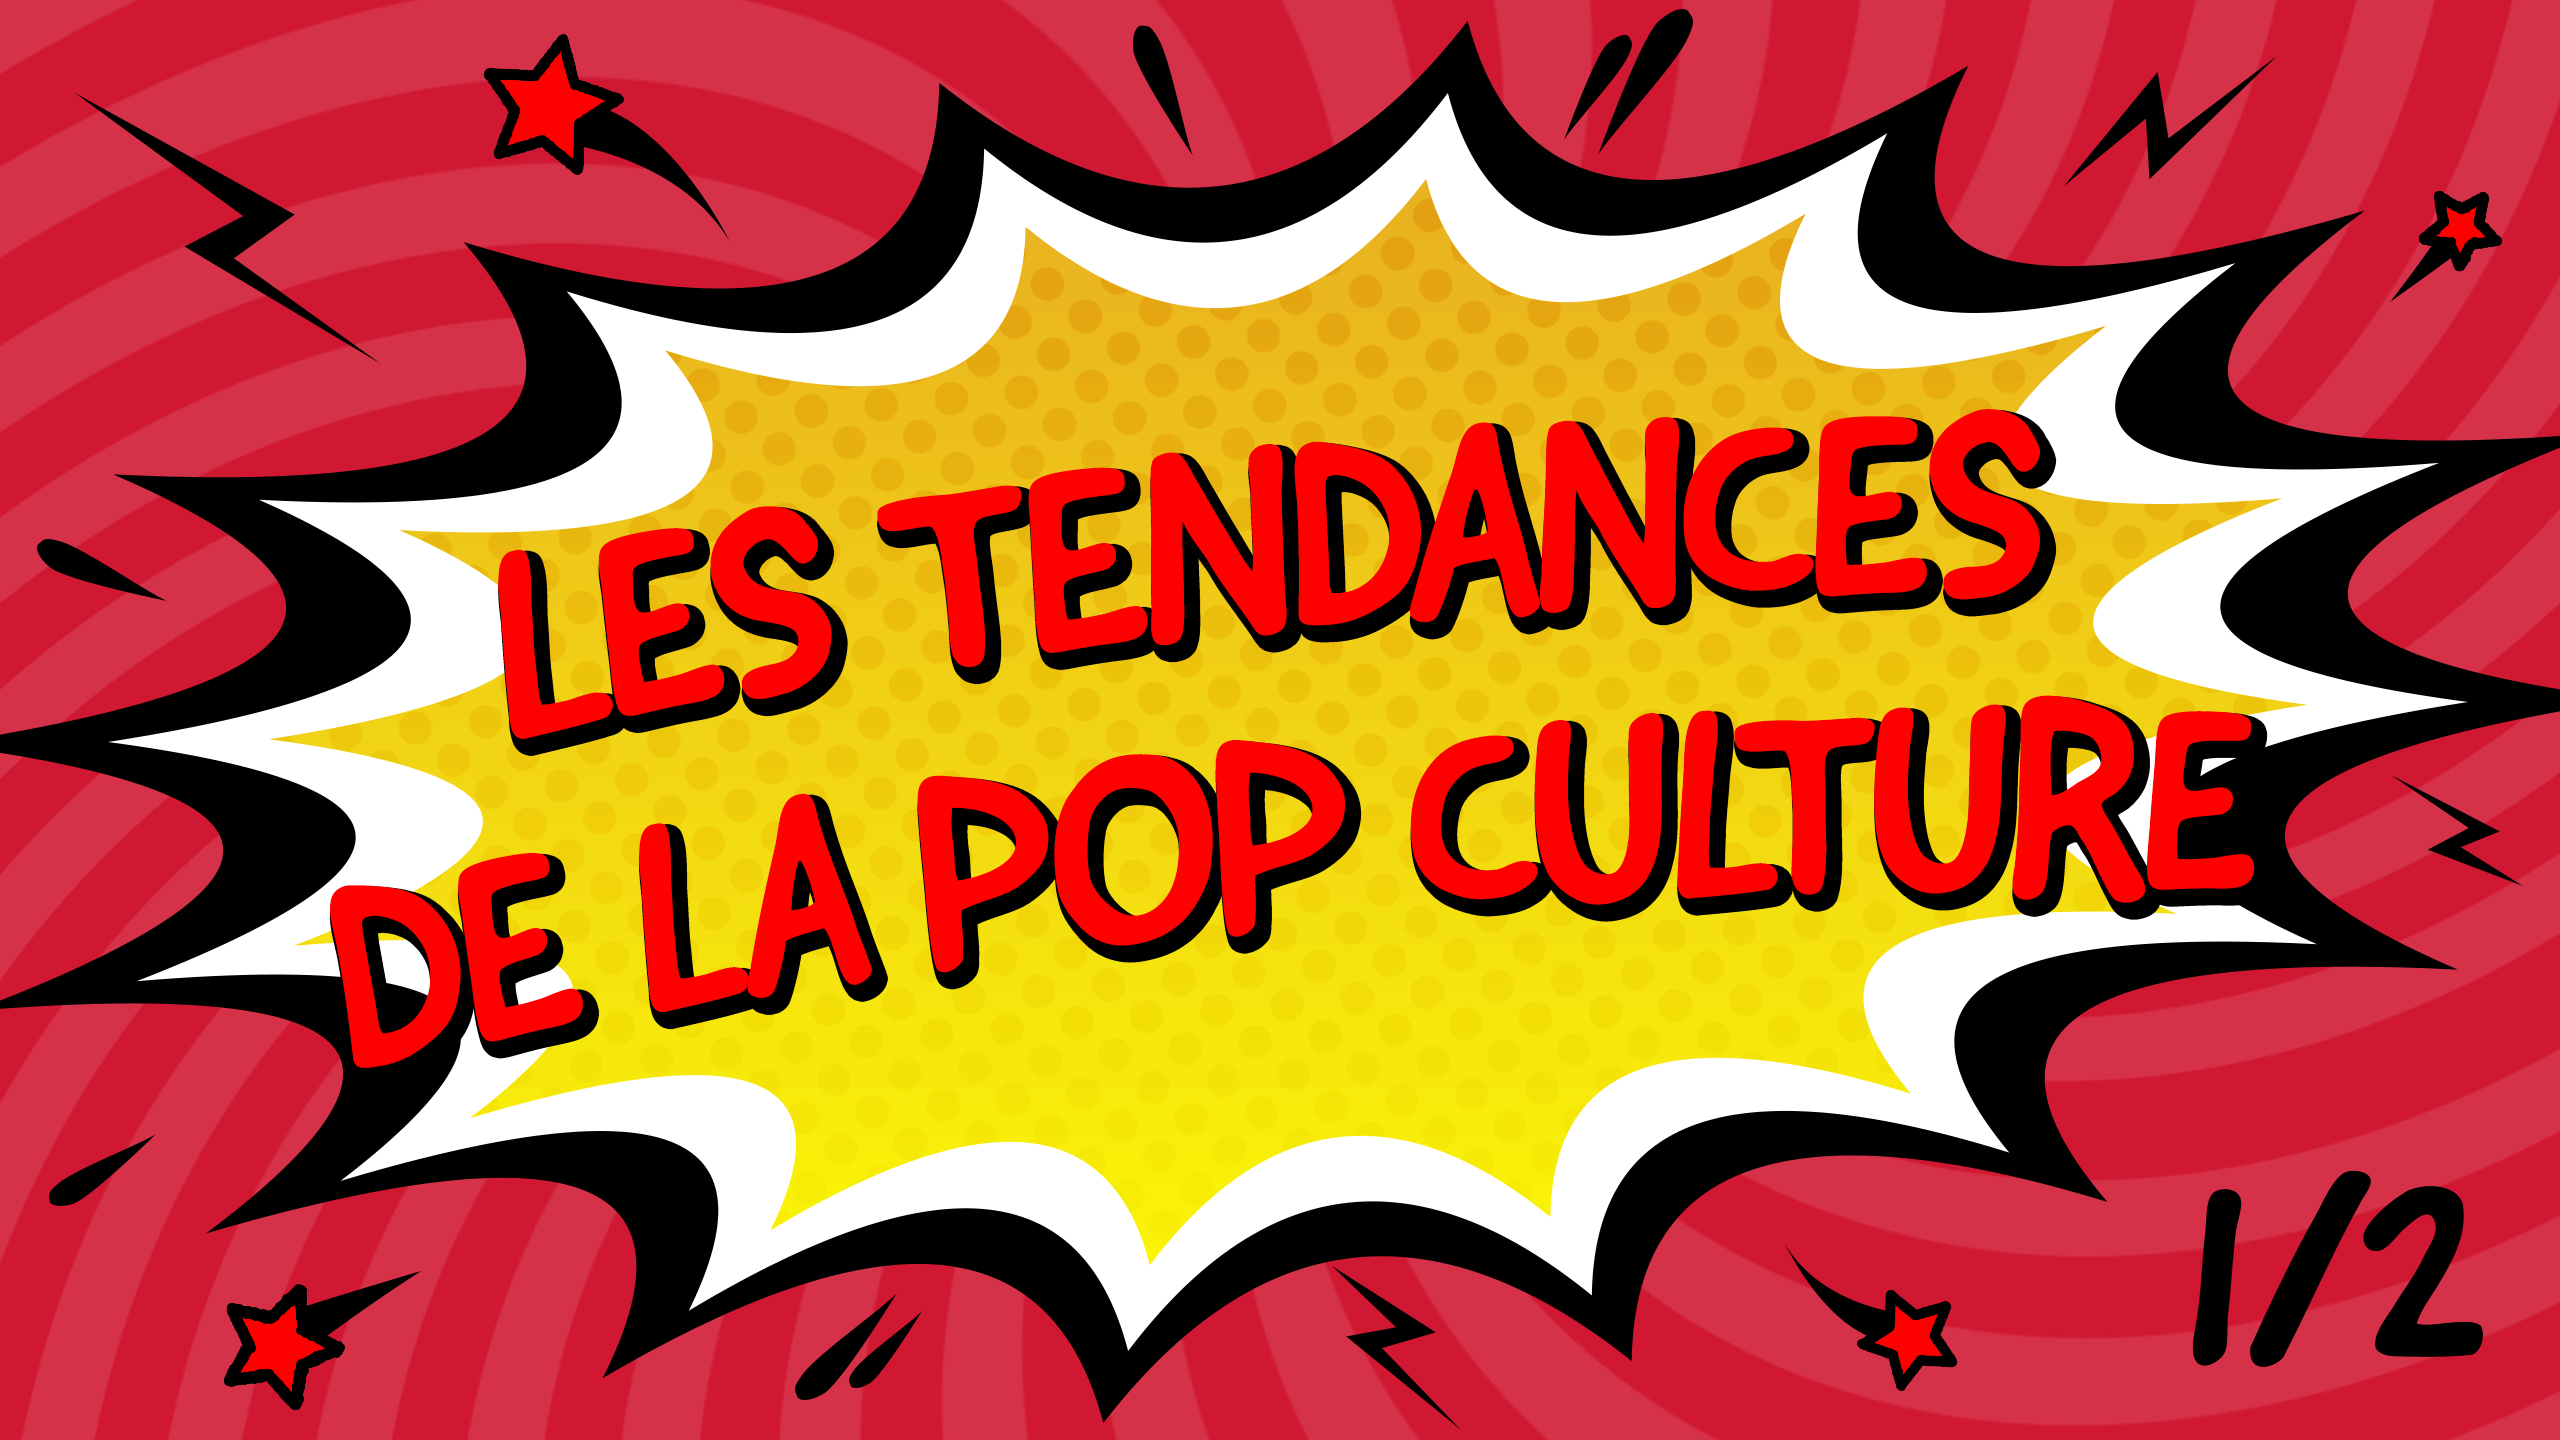 Tendances pop culture 1/2 V2